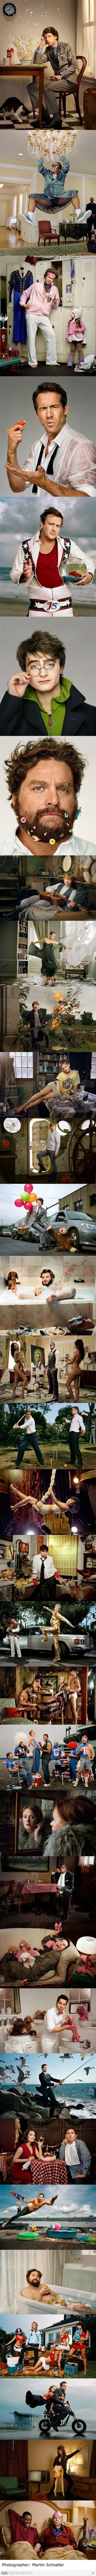 Funny celebrity pictures- Photog Martin Schoeller. Some of the best things I've ever seen